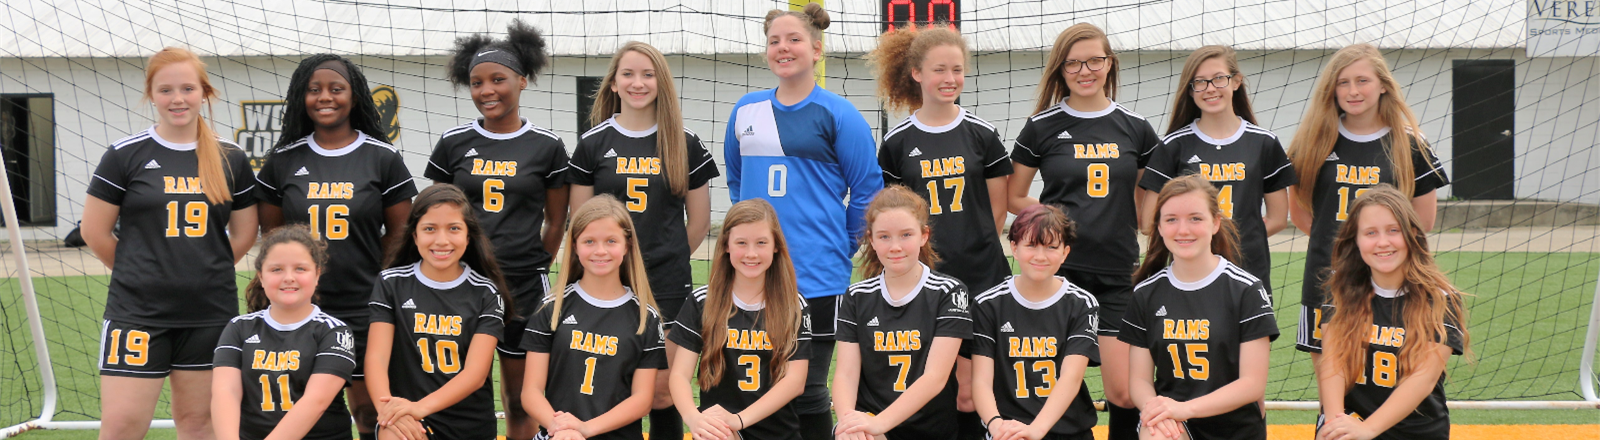 WCMS Girls Soccer Team FY20